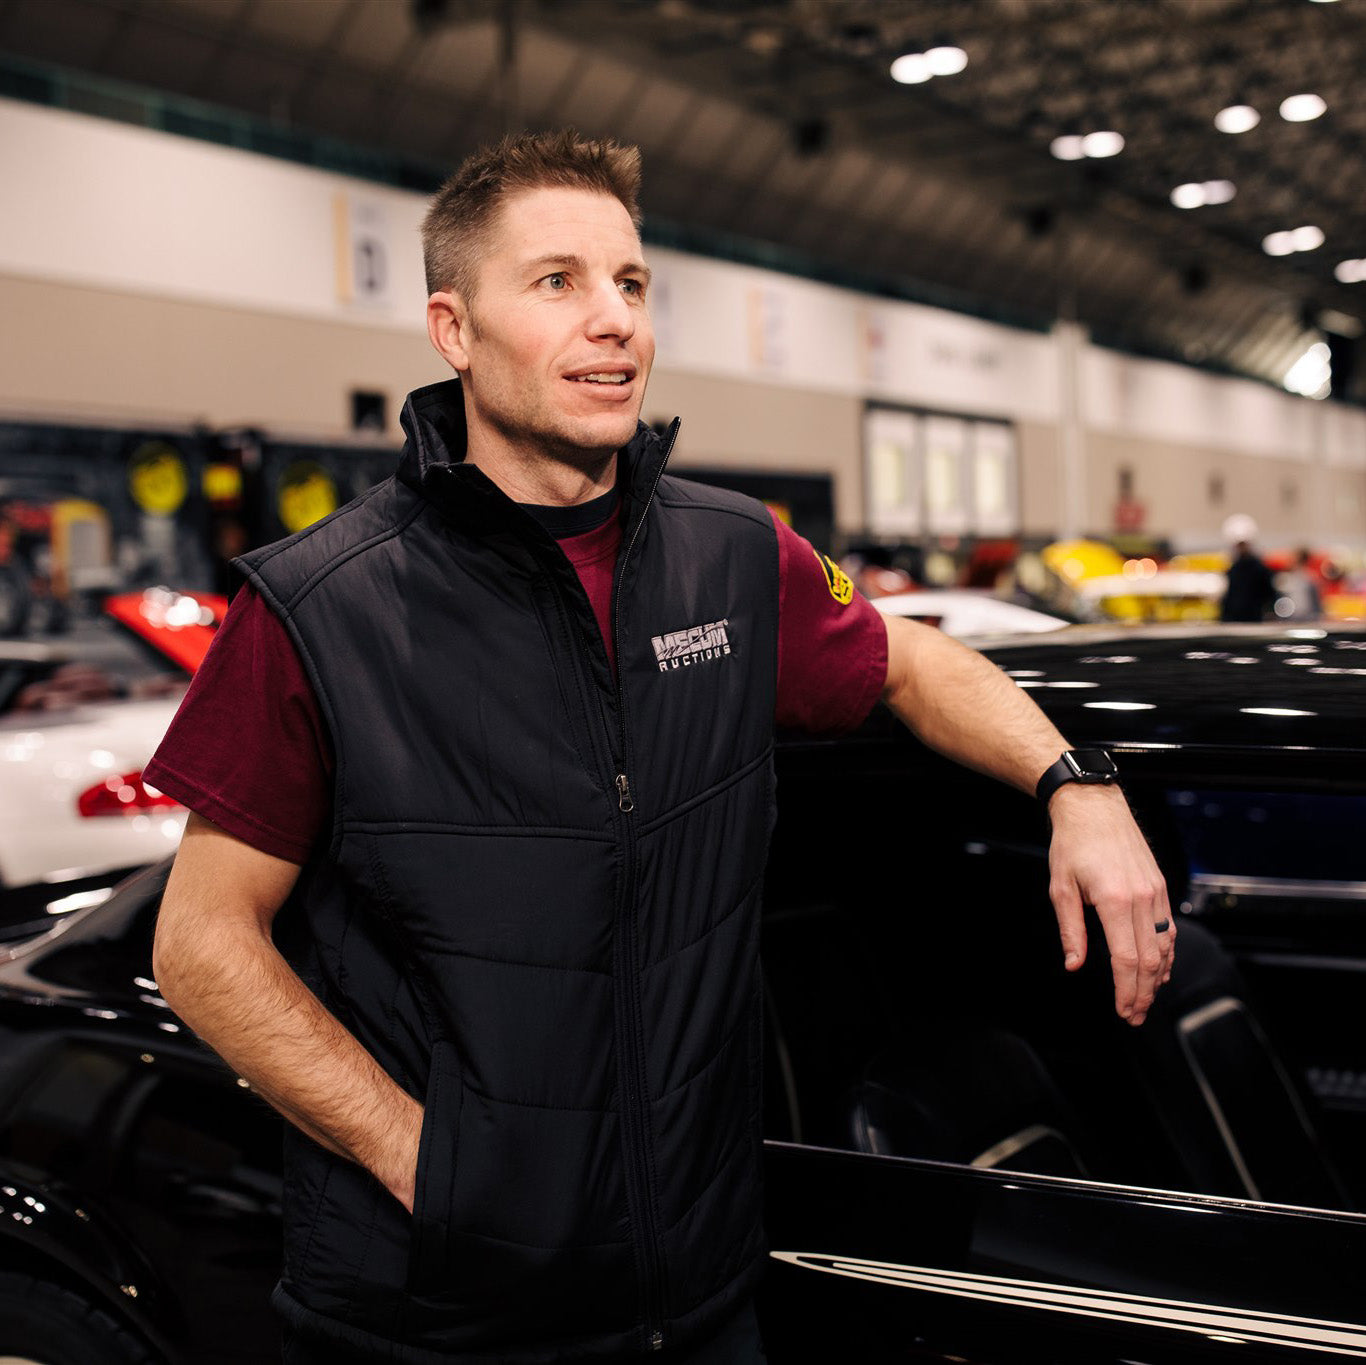 Man wearing 2020 Mecum Men's Logo Vest